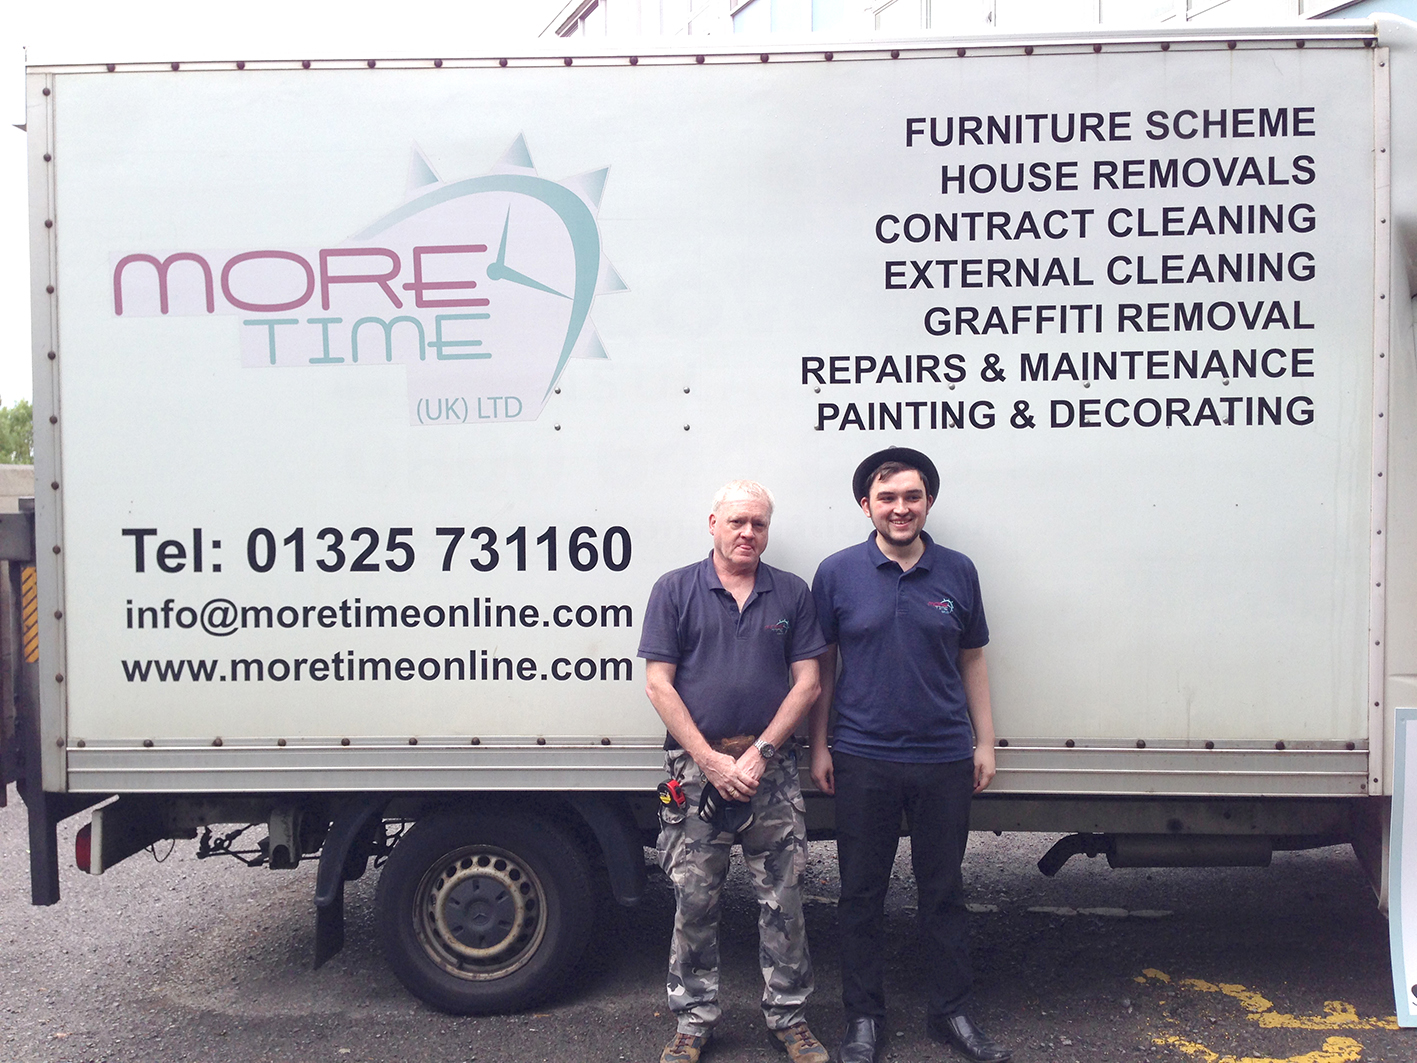 Father & Son Team up at Town's Furniture Scheme